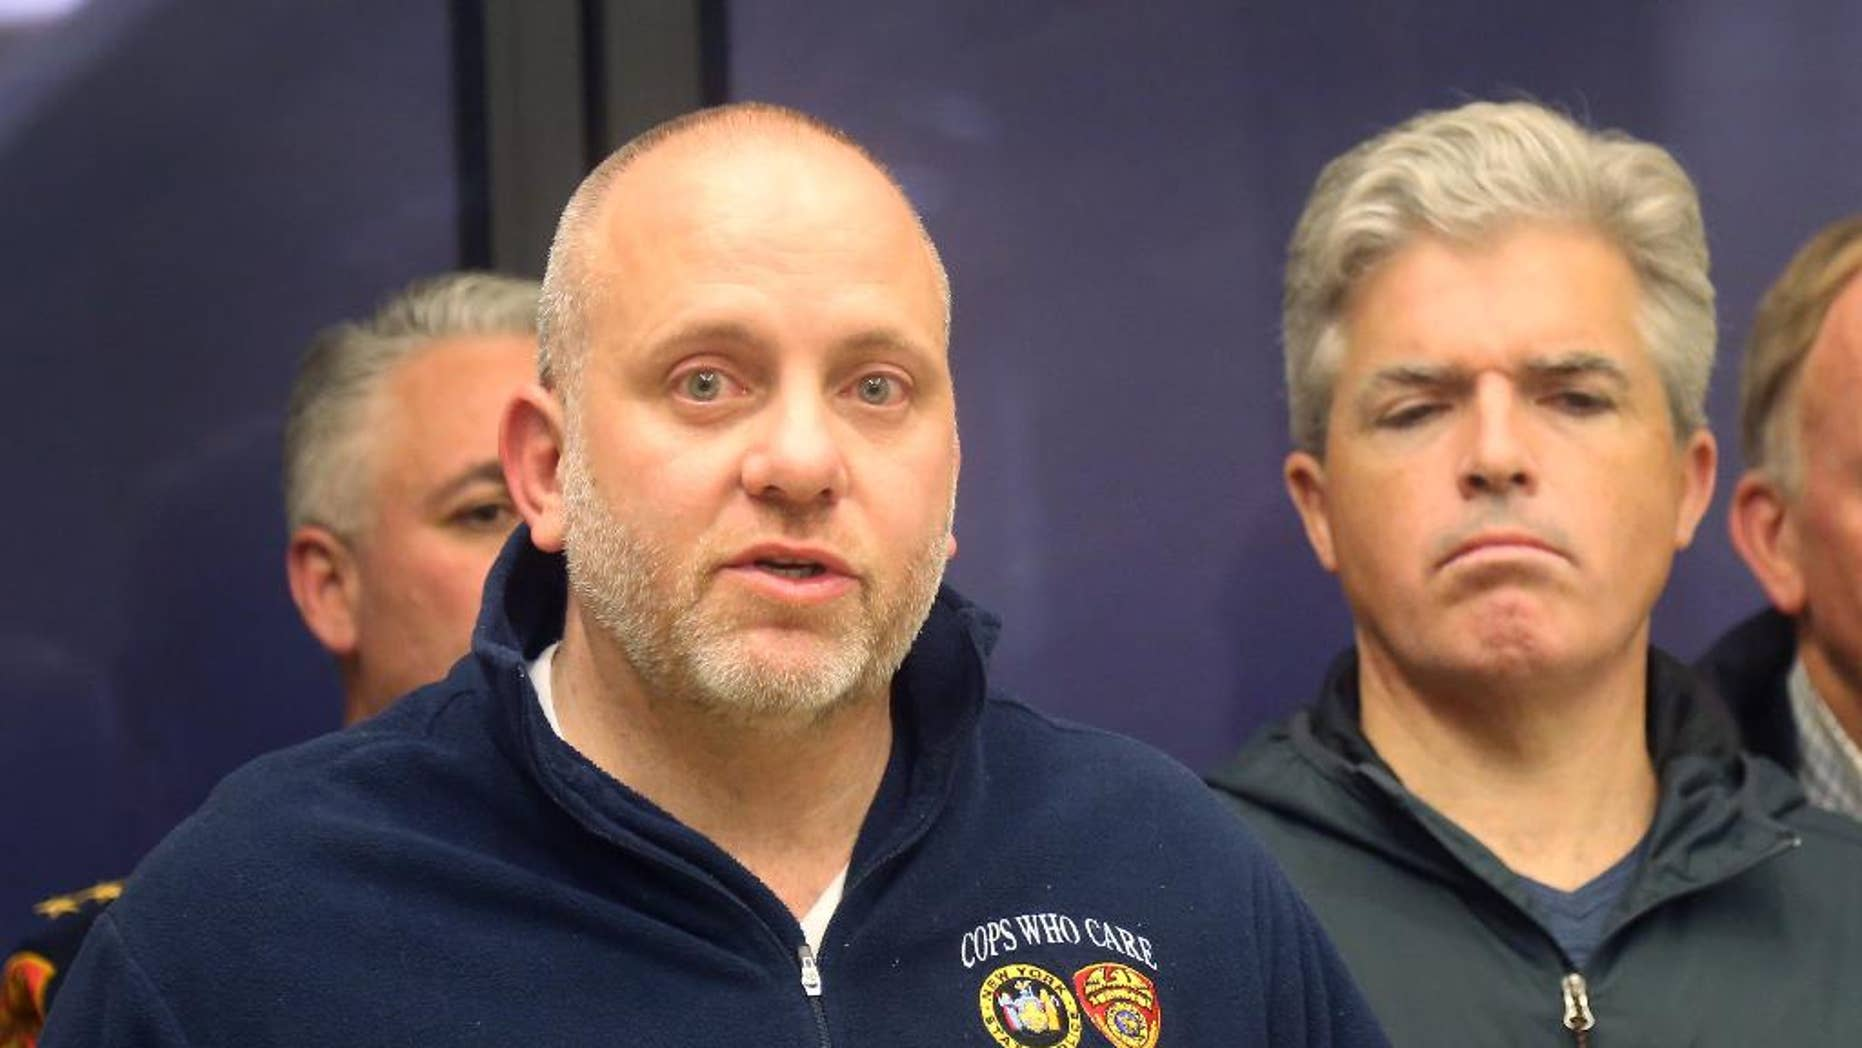 Noel DiGerolamo, left, President of the Suffolk County Police Benevolent Association, and Suffolk County Executive Steven Bellone, speak with reporters at a news conference at Stony Brook University Hospital, Thursday, March 12, 2015 in Stony Brook, N.Y. A Suffolk County police officer was shot and wounded while confronting a suspect who fled a traffic stop, police officials said. Officer Mark Collins, who is expected to survive, was in plain-clothes and driving an unmarked vehicle when he stopped a car for a vehicle and traffic violation on Route 25 in Huntington Station. A suspect is in custody. (AP Photo/Mike Balsamo)